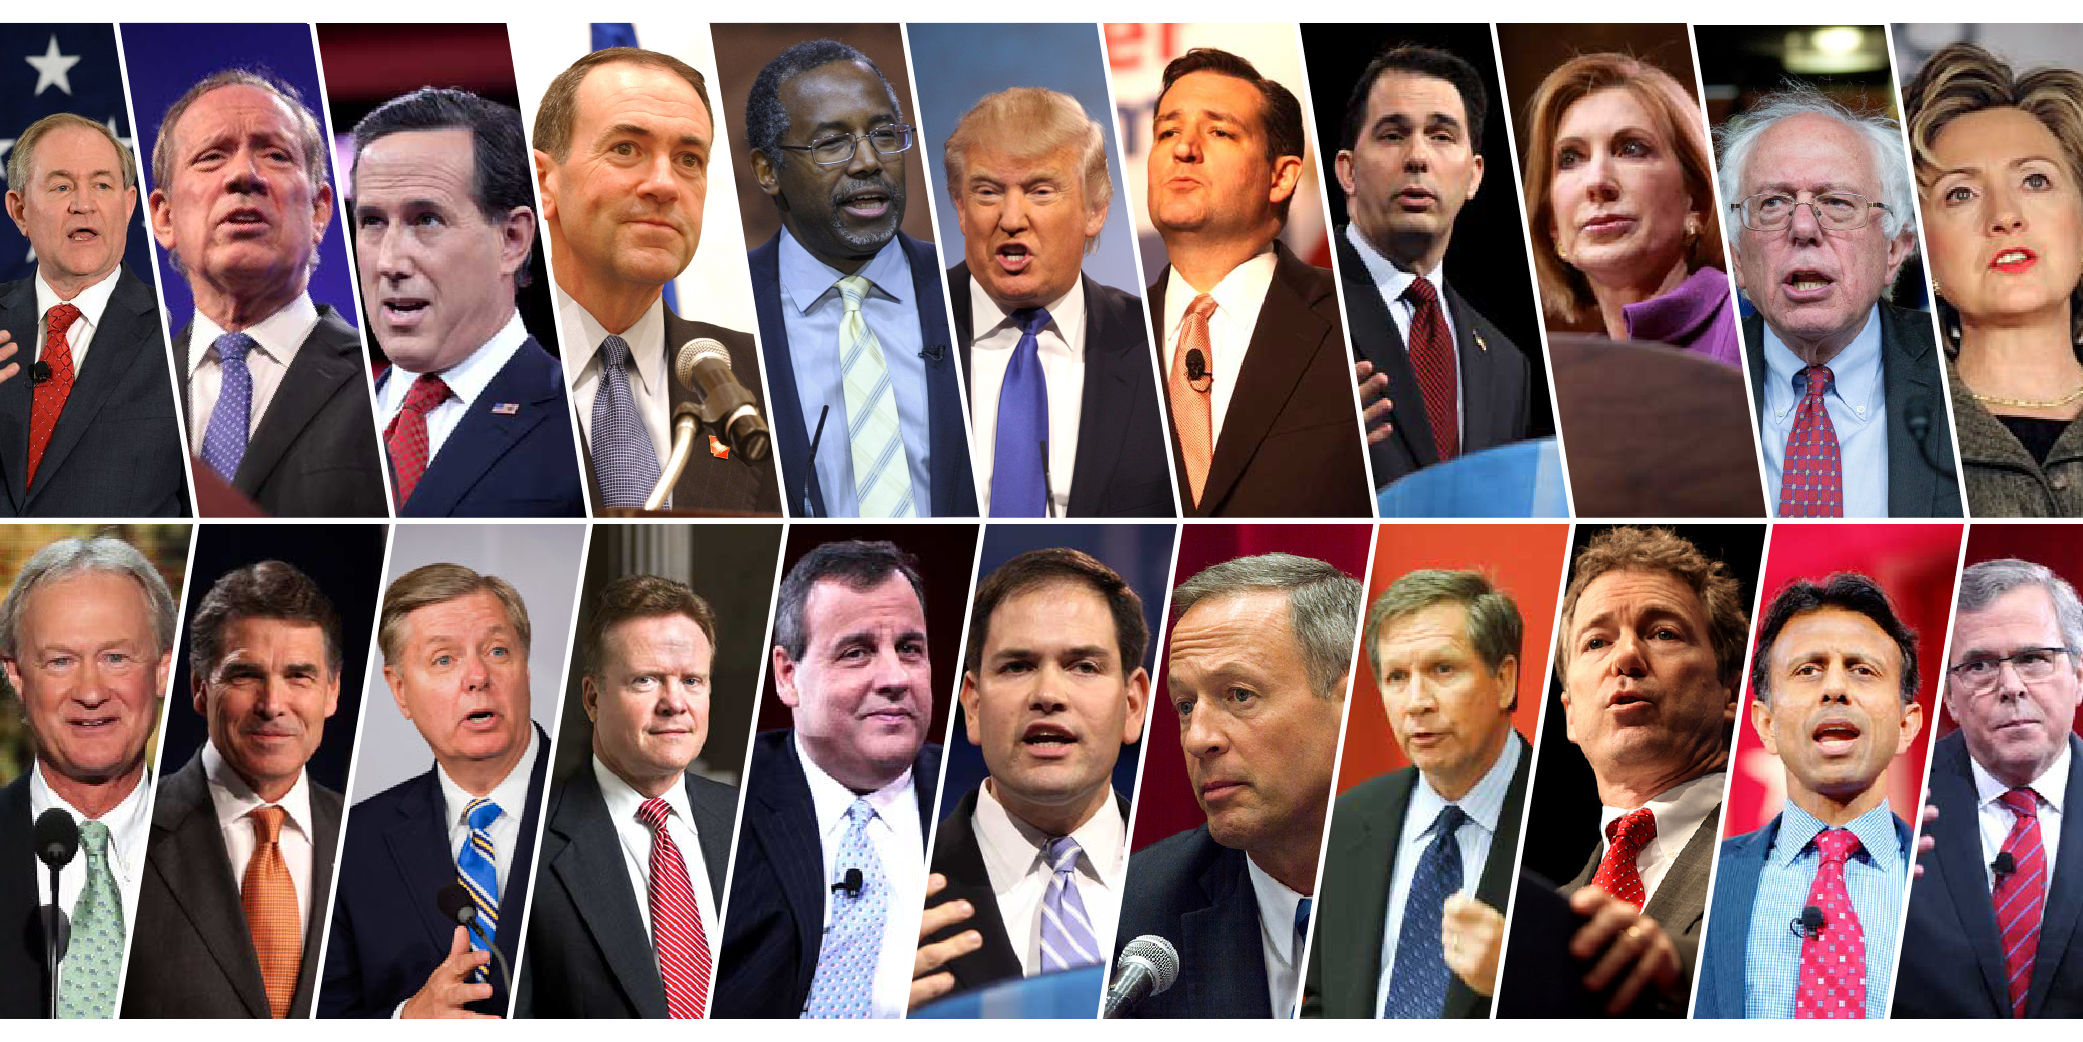 candidates their